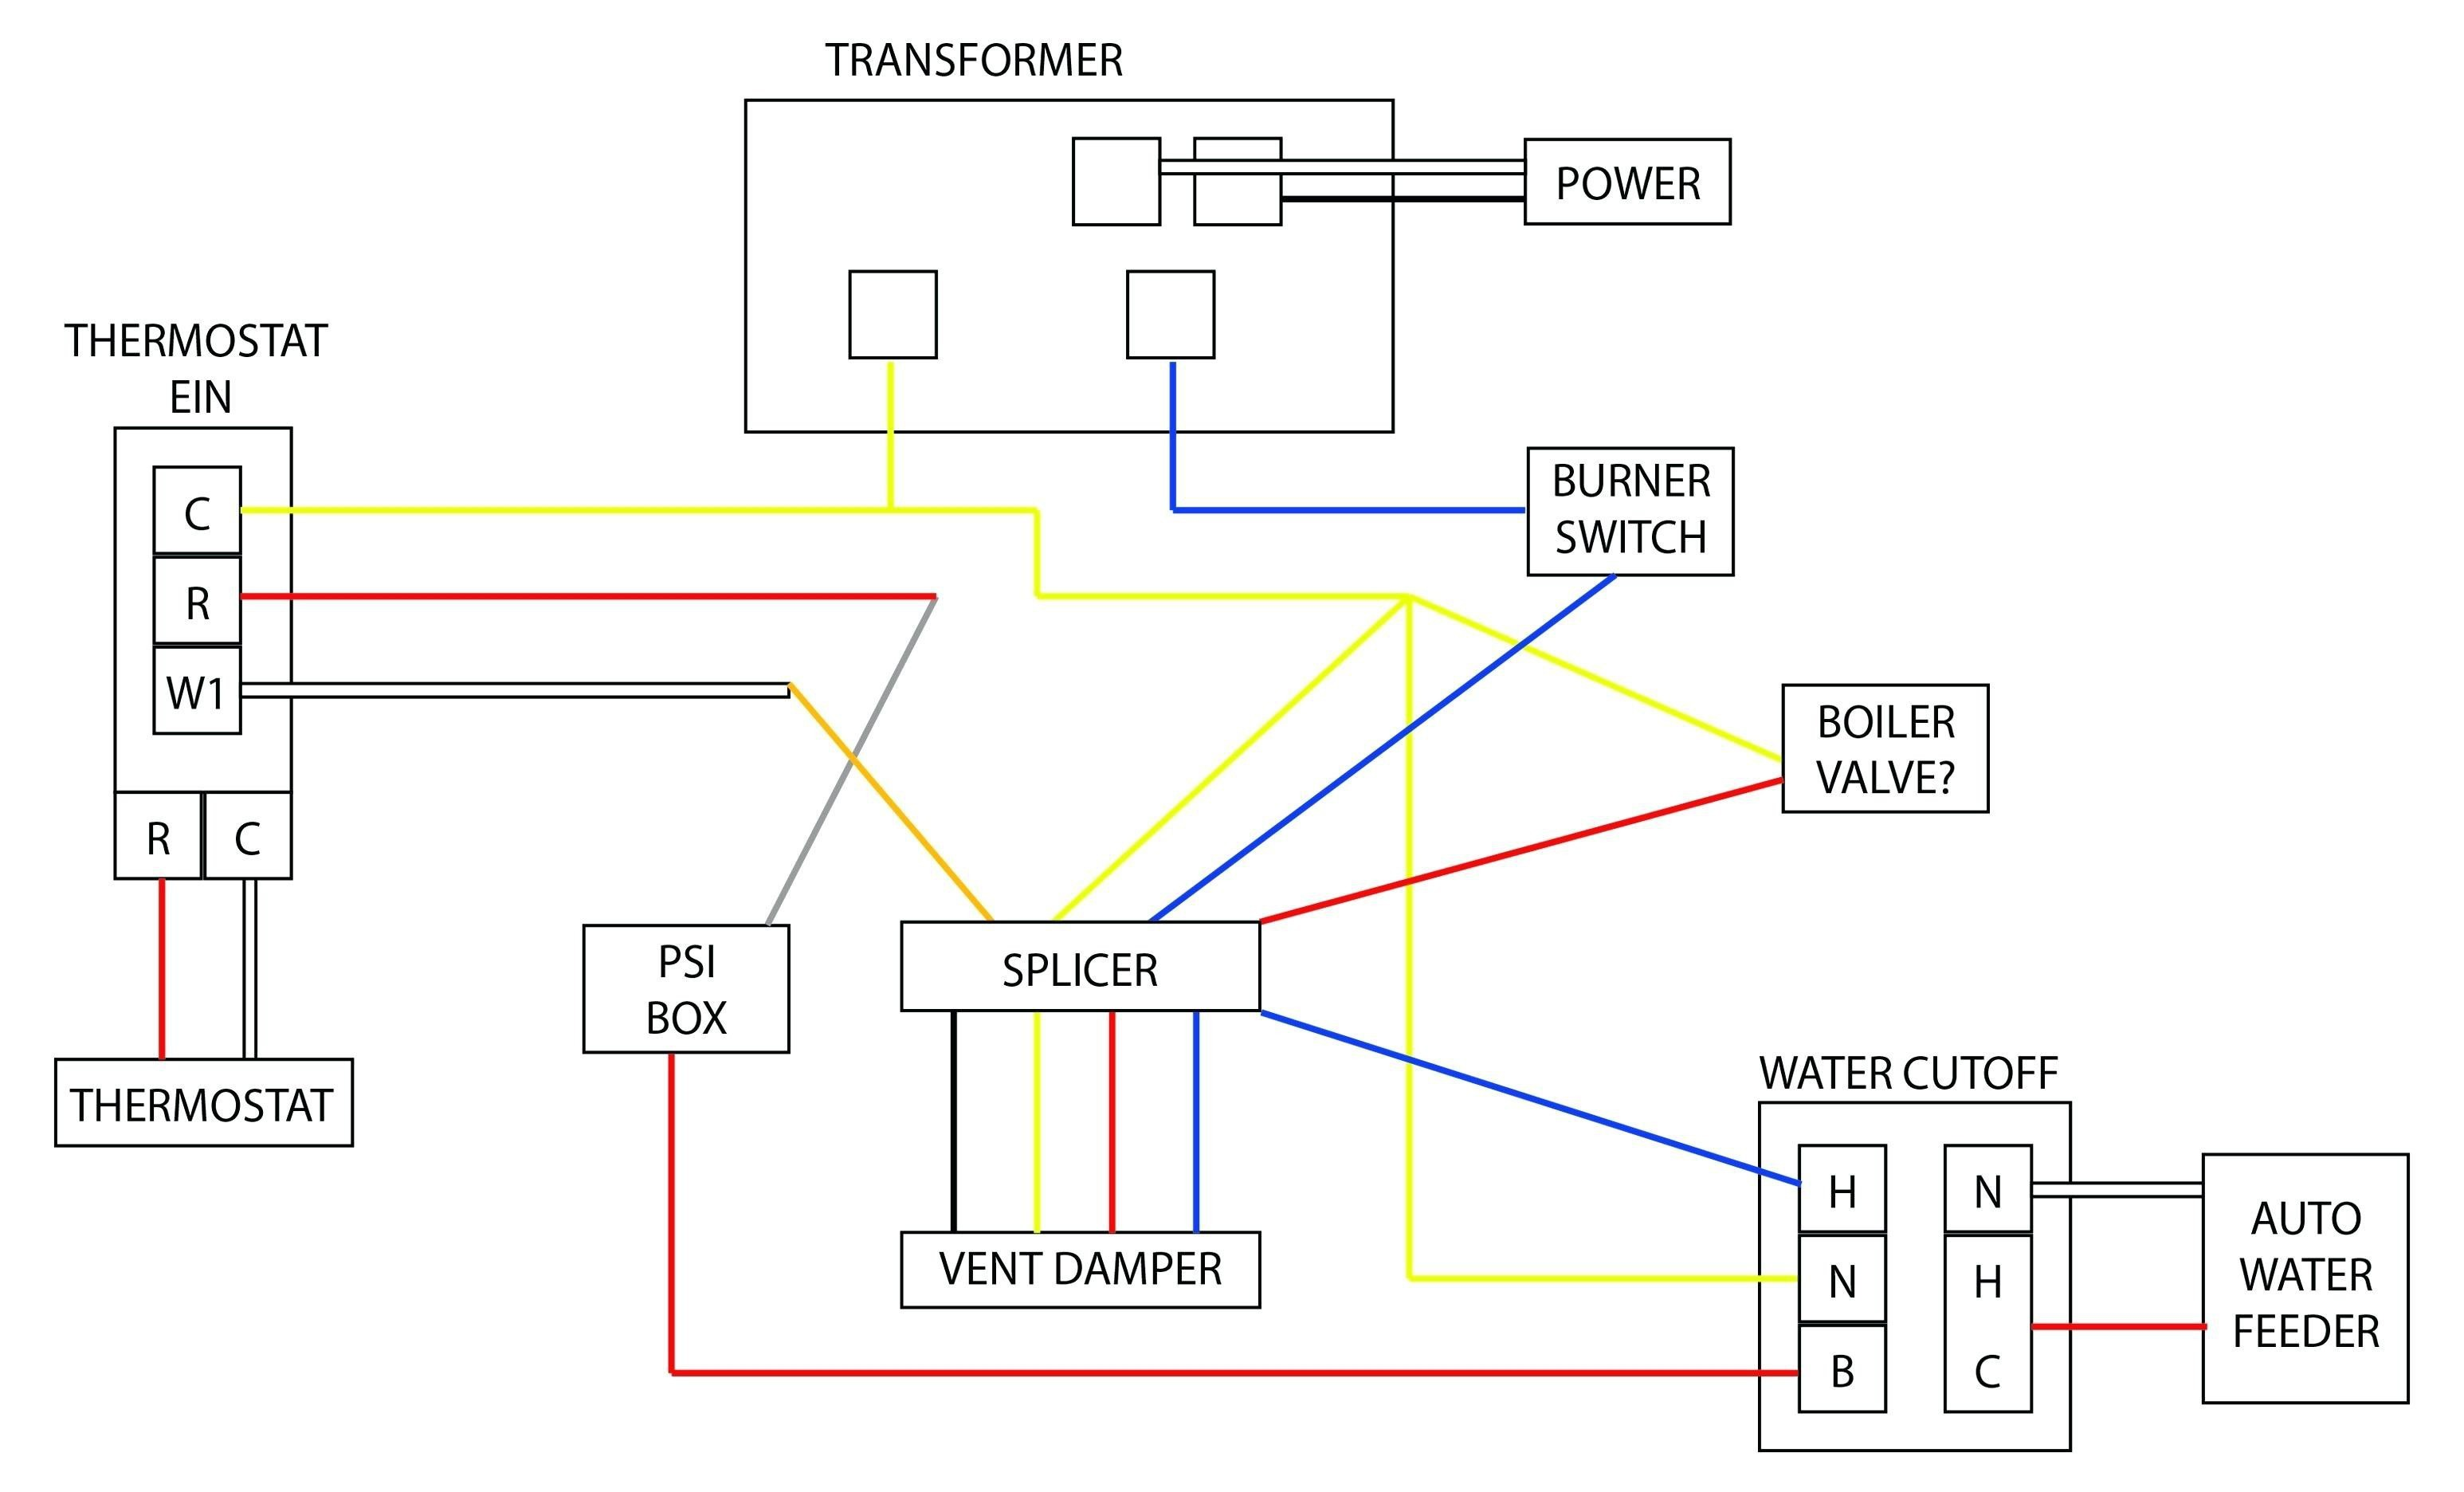 infinite switch wiring diagram wiring diagram image multiple light switch wiring diagrams free wiring diagram typical diagram for wiring a 24v furnace gas valve wiring diagram